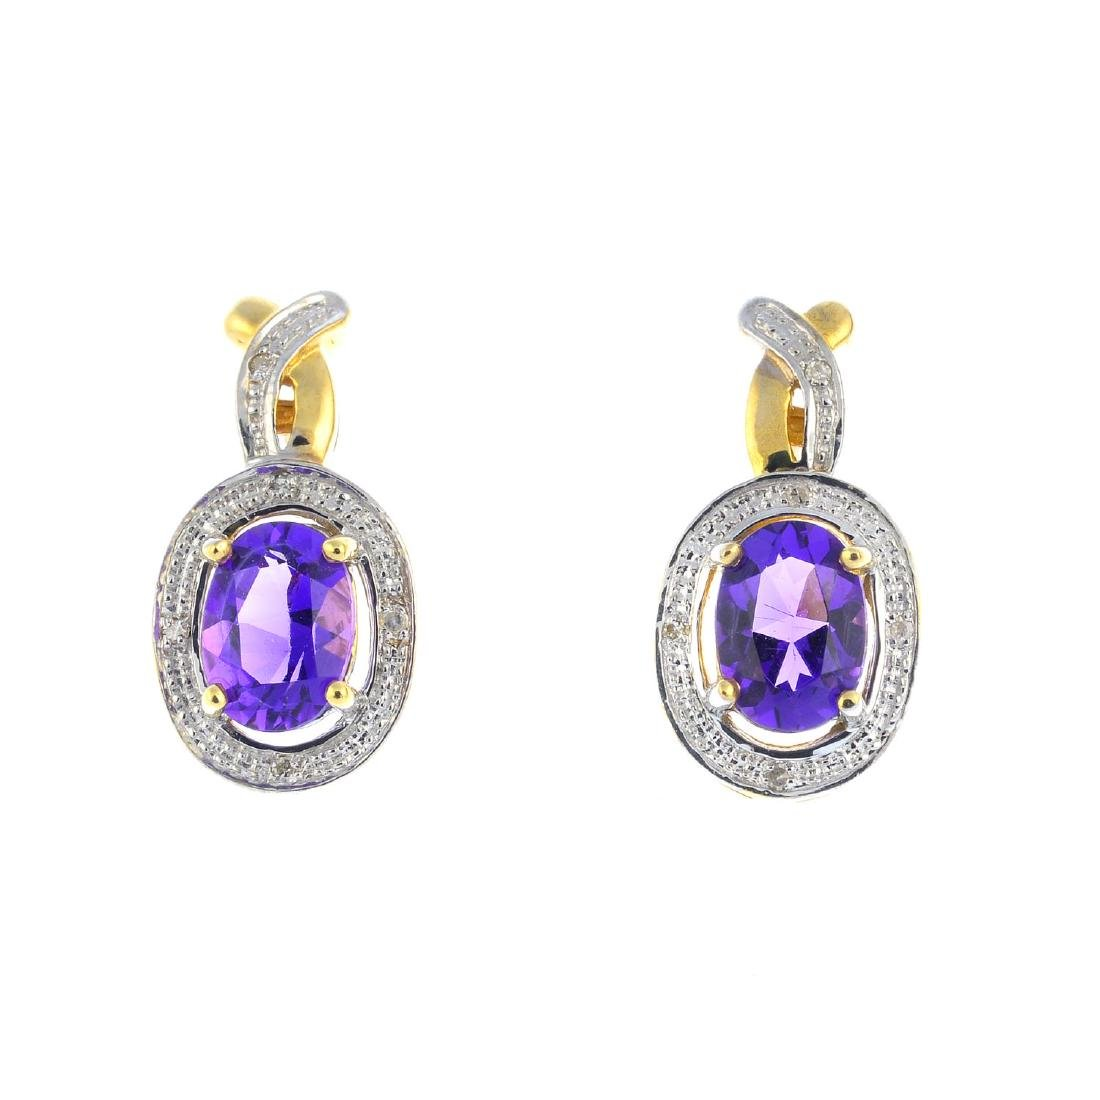 A pair of 9ct gold amethyst and diamond earrings. Each